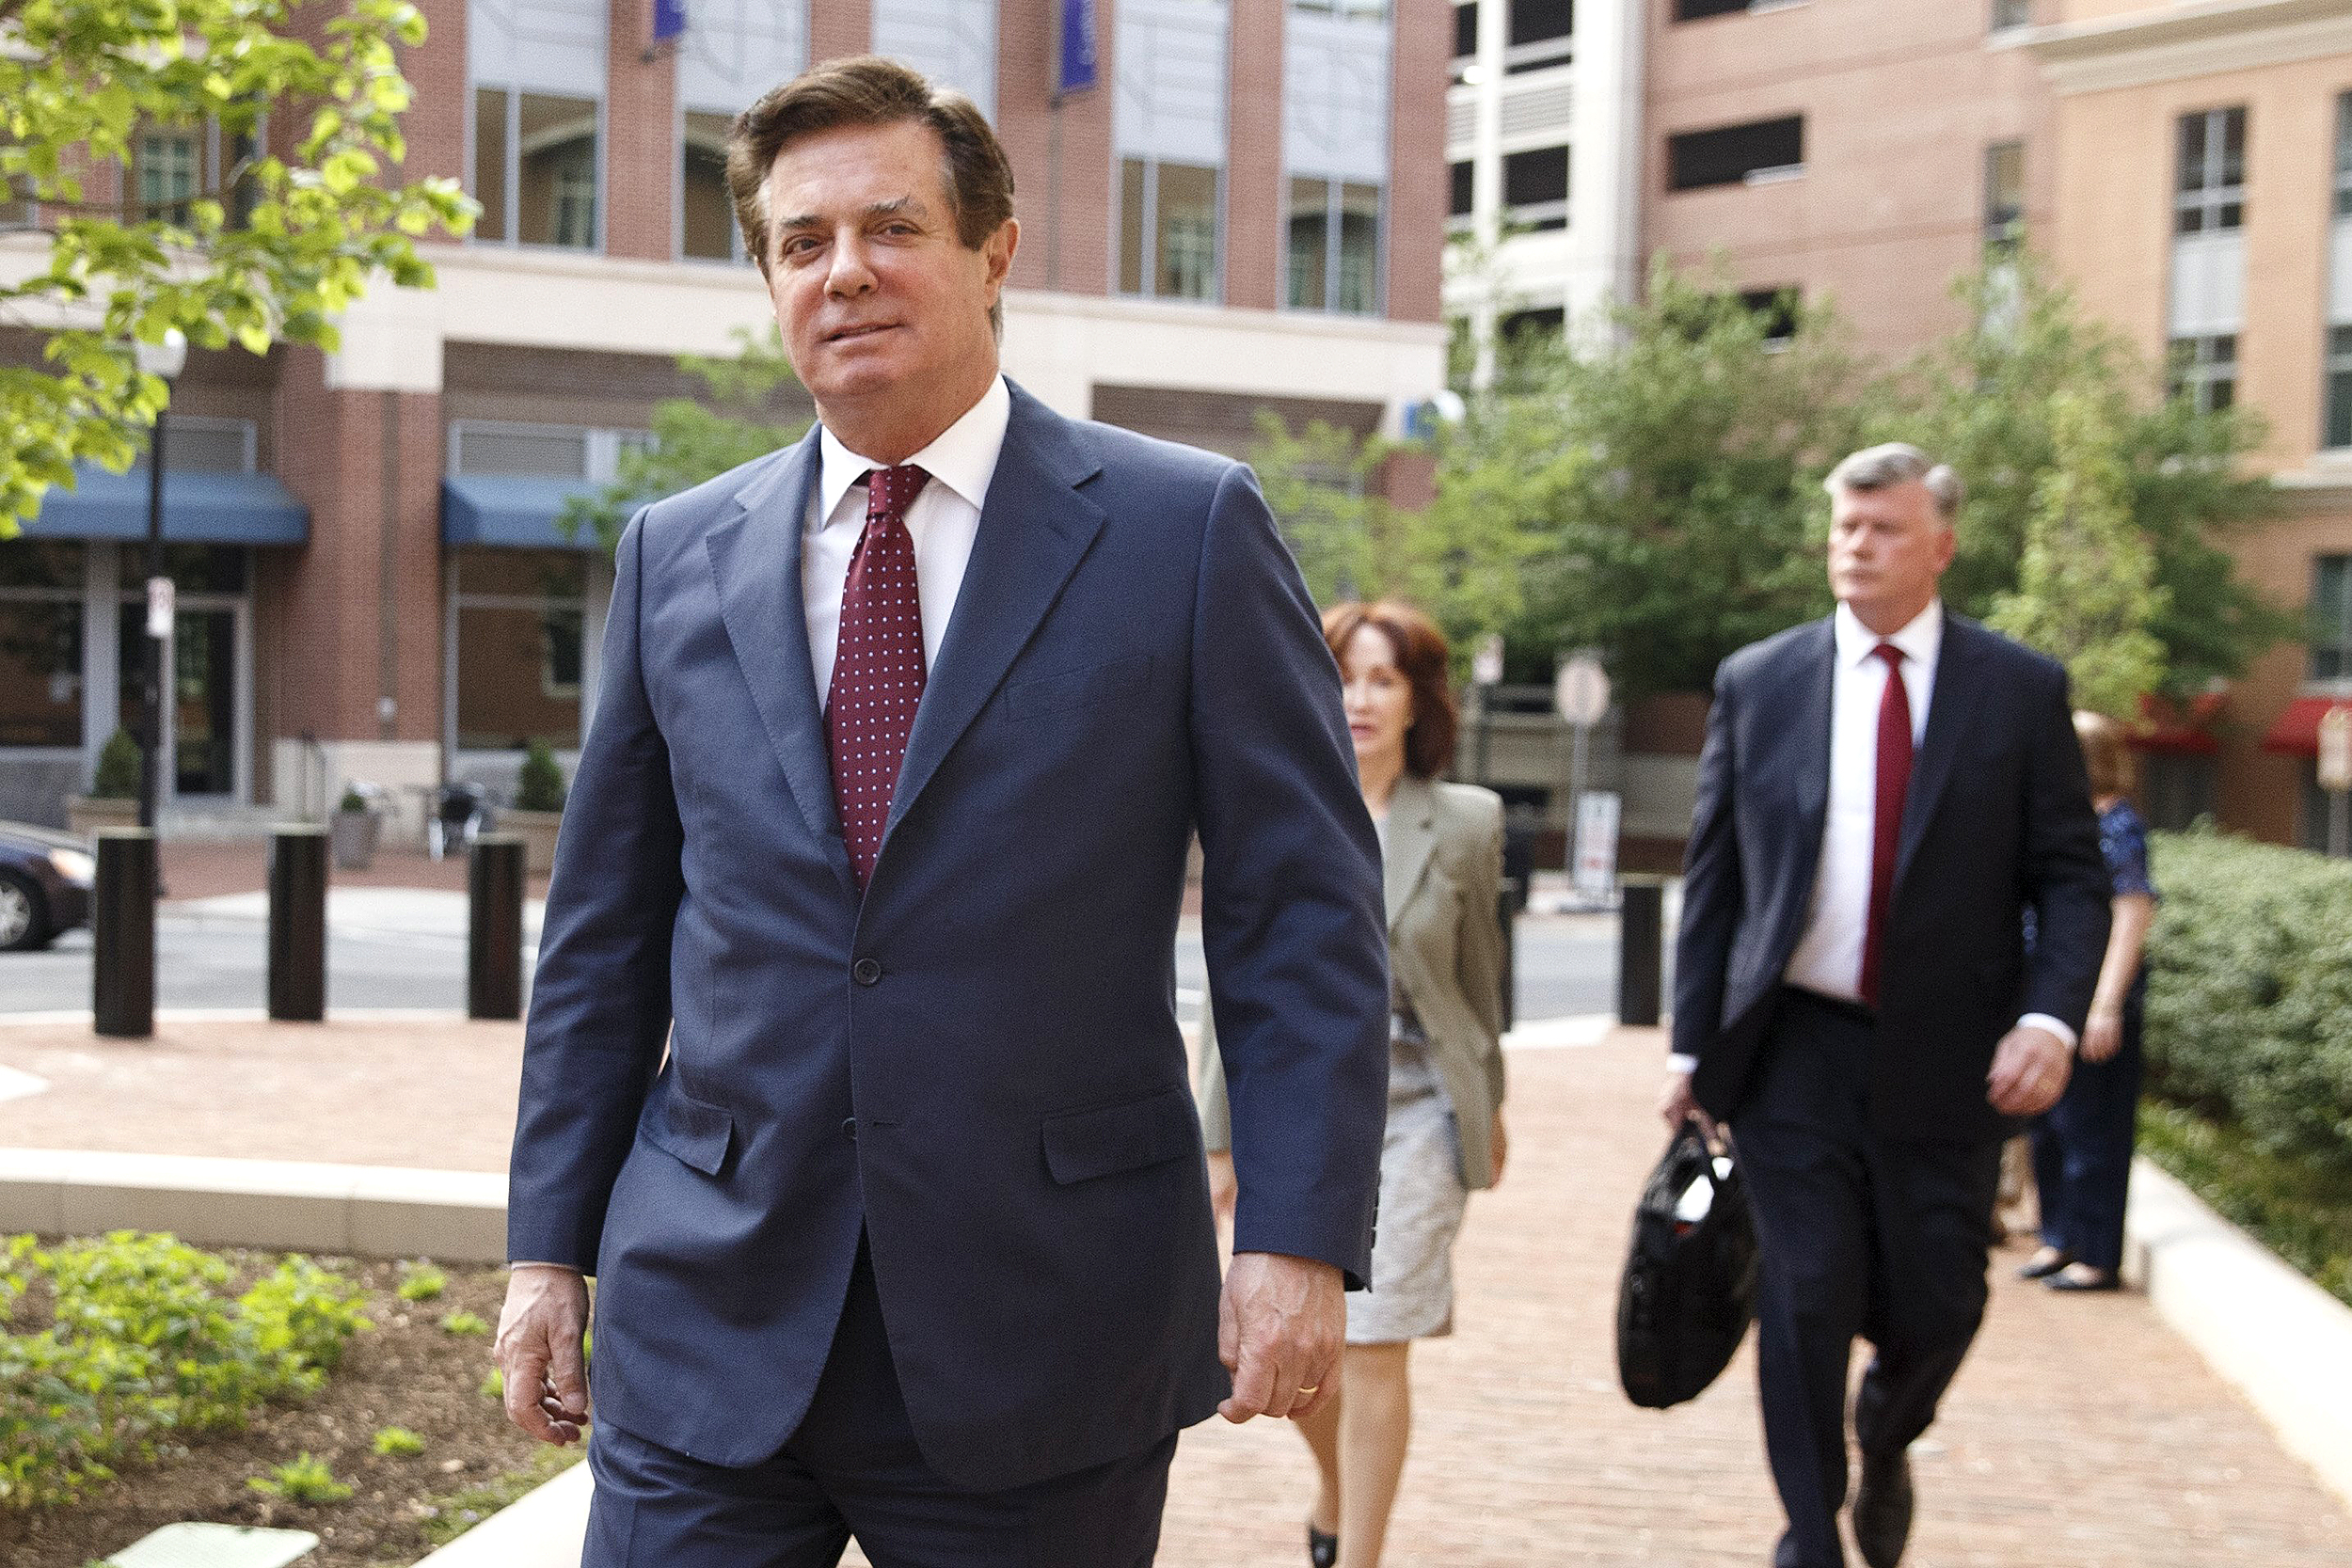 nbcnews.com - Manafort's ex-son-in-law charged with another real estate scam in LA